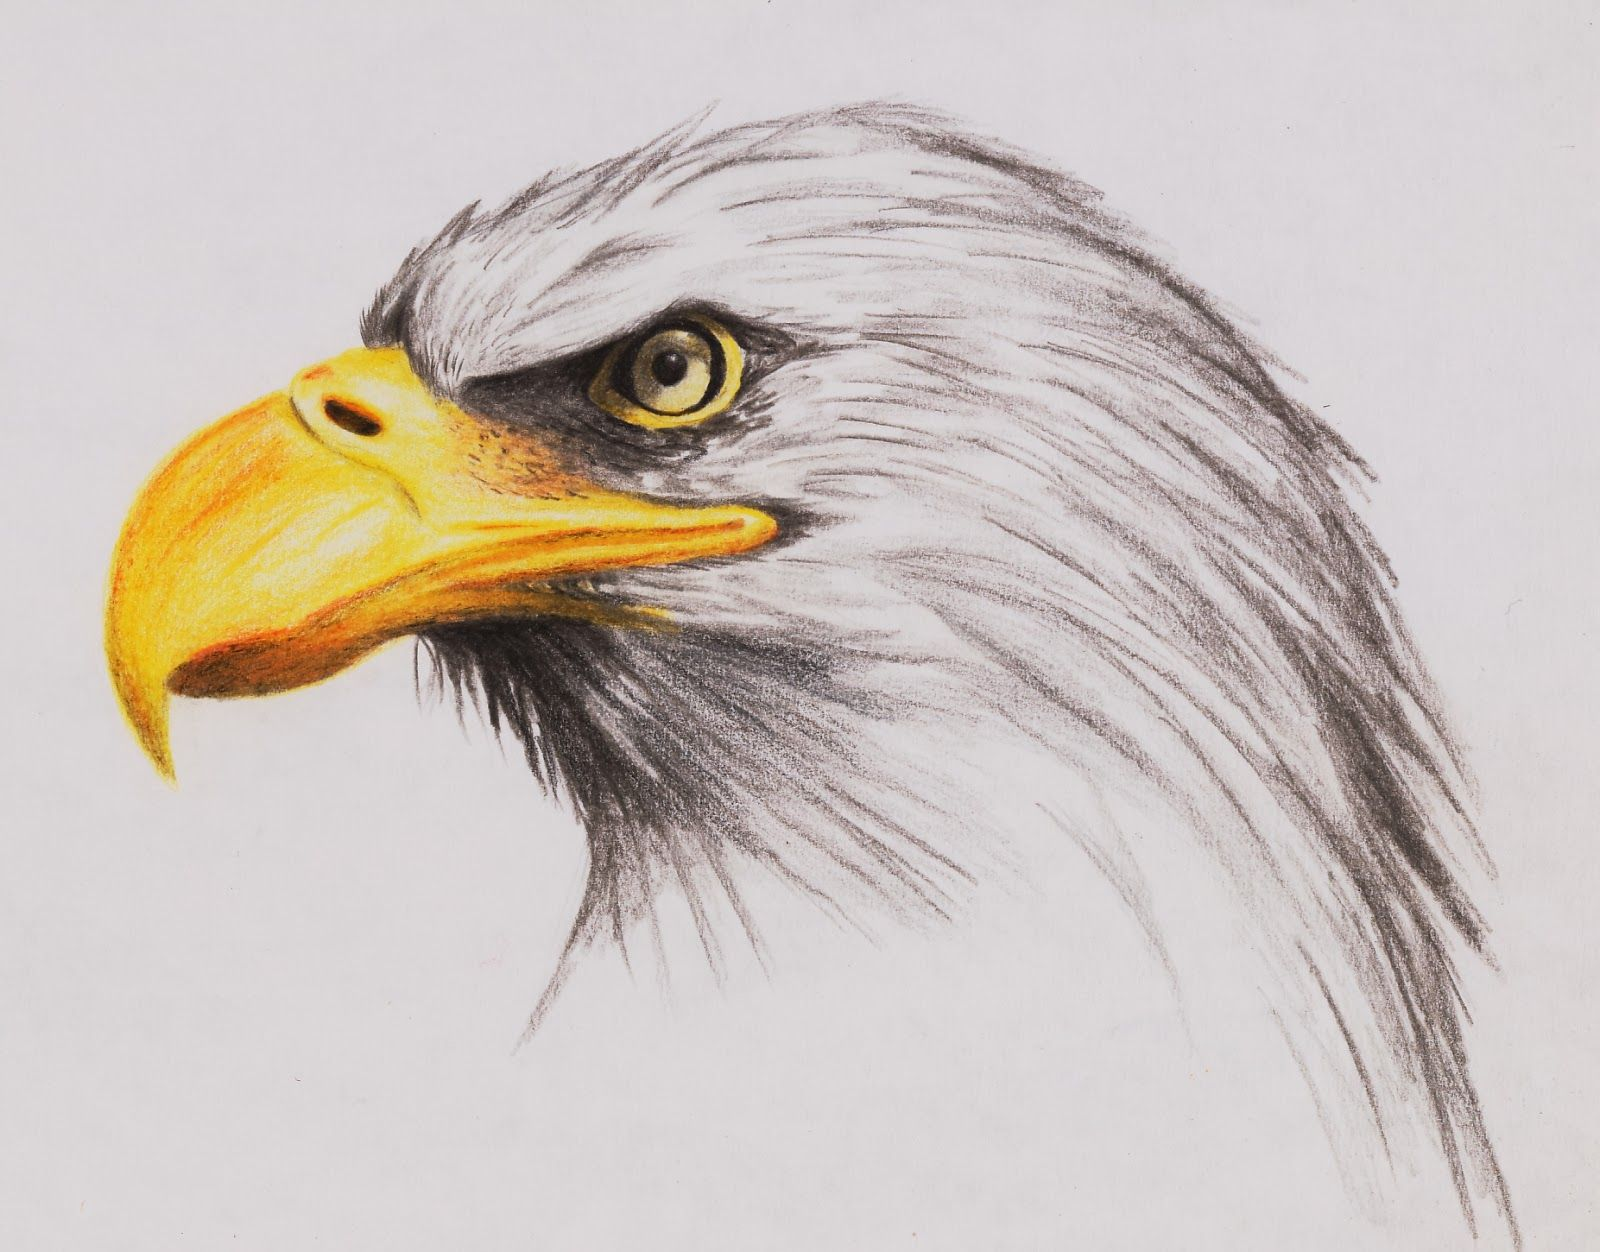 Detailed Egale Drawings - Yahoo Image Search results | For my art ...